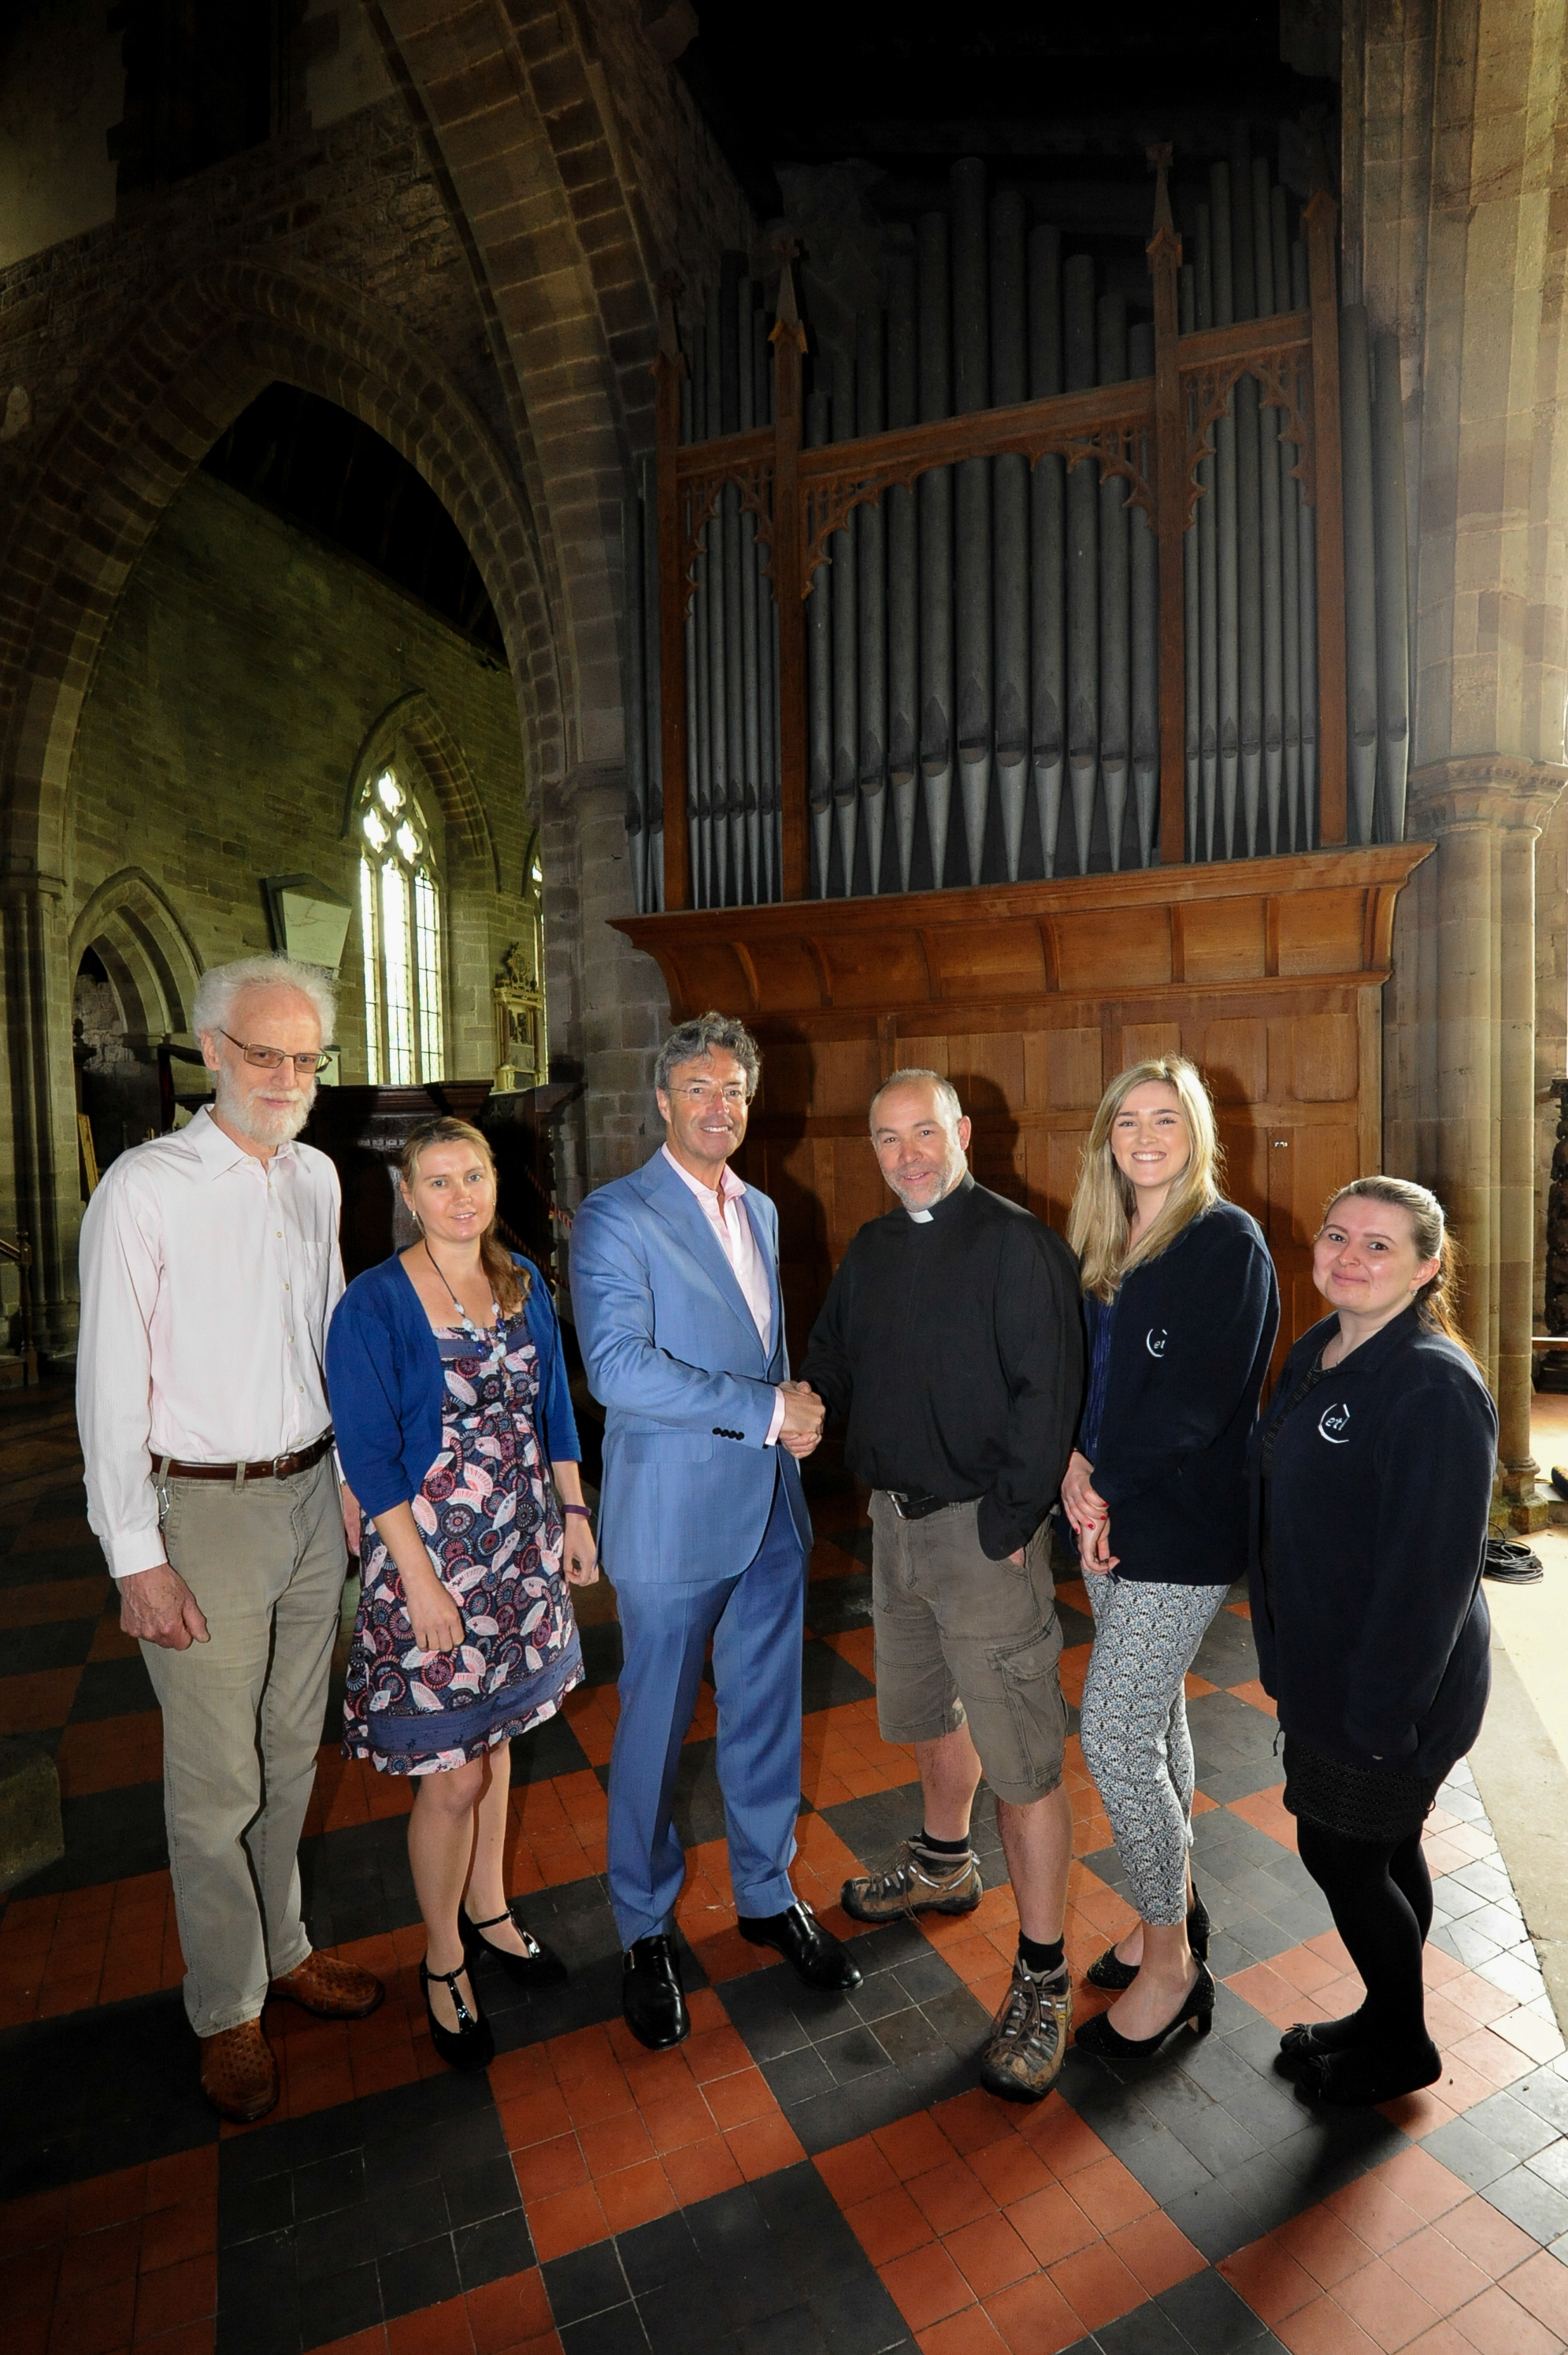 ETL Systems in Madley have donated £1000 to repair the organ & roof at St. Mary's Church, Madley. from left: John Dinnen (PCC group), Jessica Stone (ETL), Ian Hilditch (Managing Director & CEO, ETL), Rev. Simon Lockett, Danielle Mee (ETL